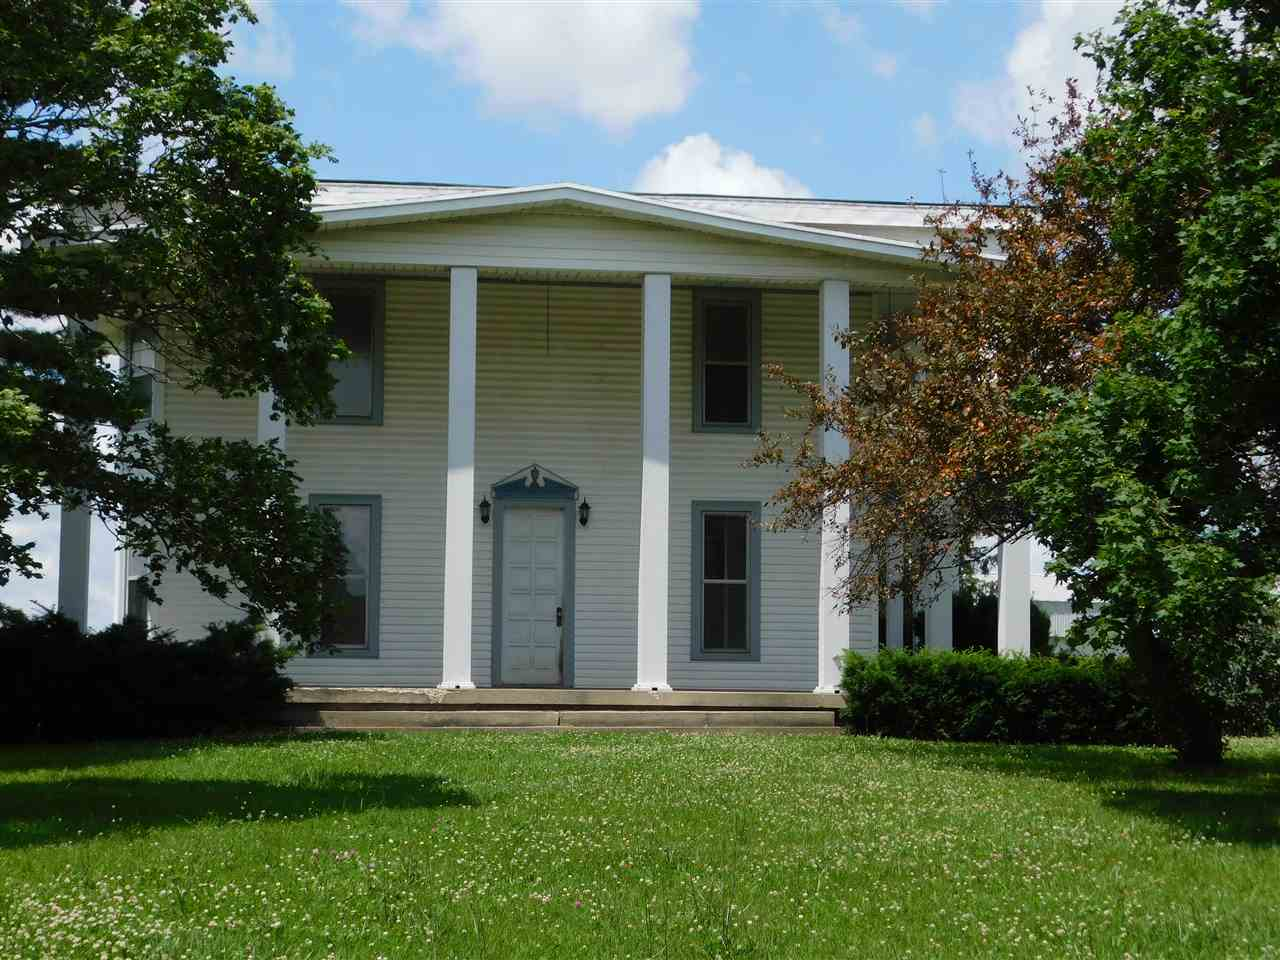 4867 N 300 E, Marion, IN 46952